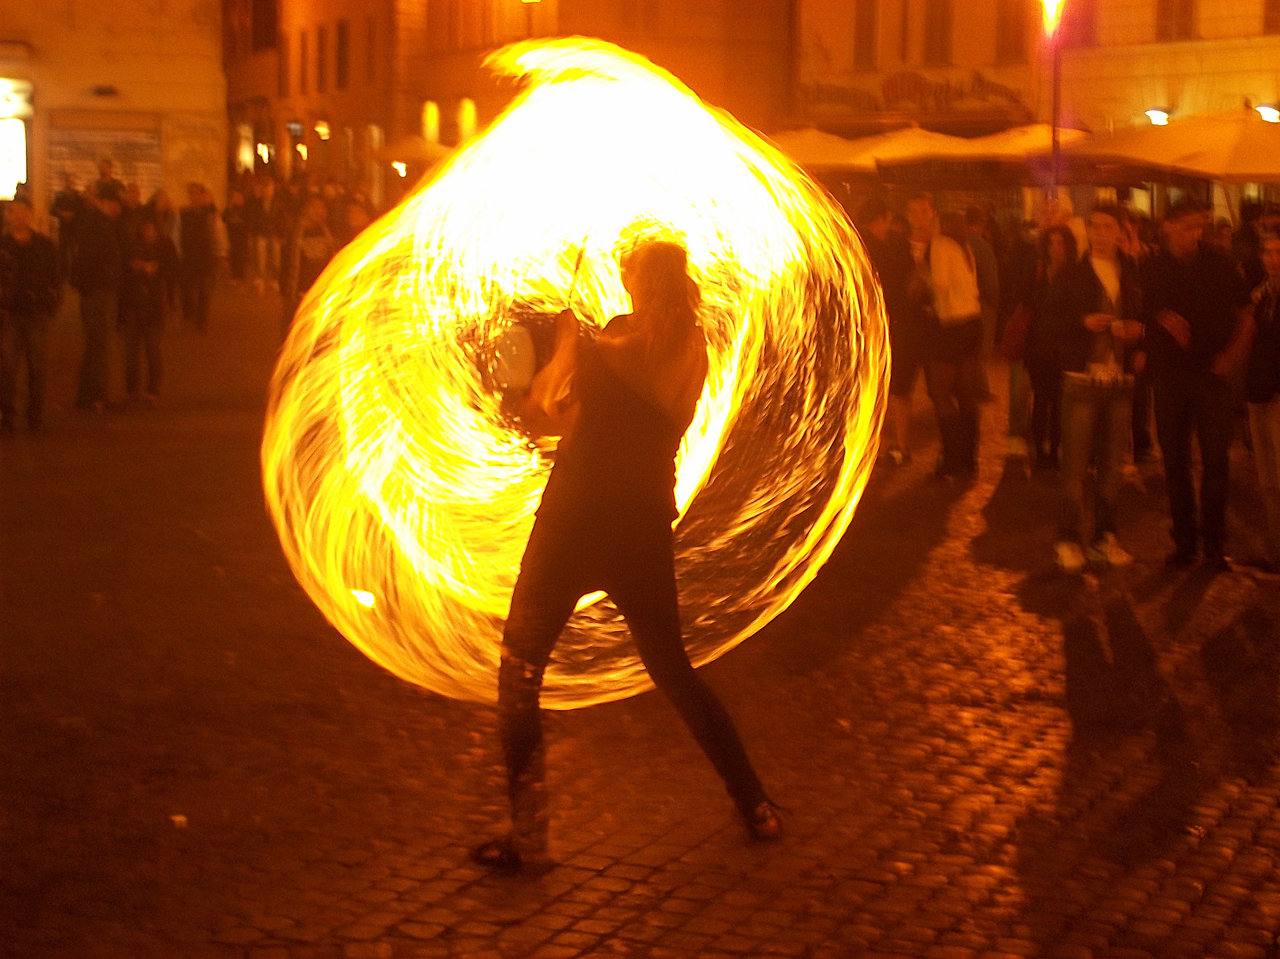 """FIRE-DANCER""_PHOTO TAKEN IN ROME"